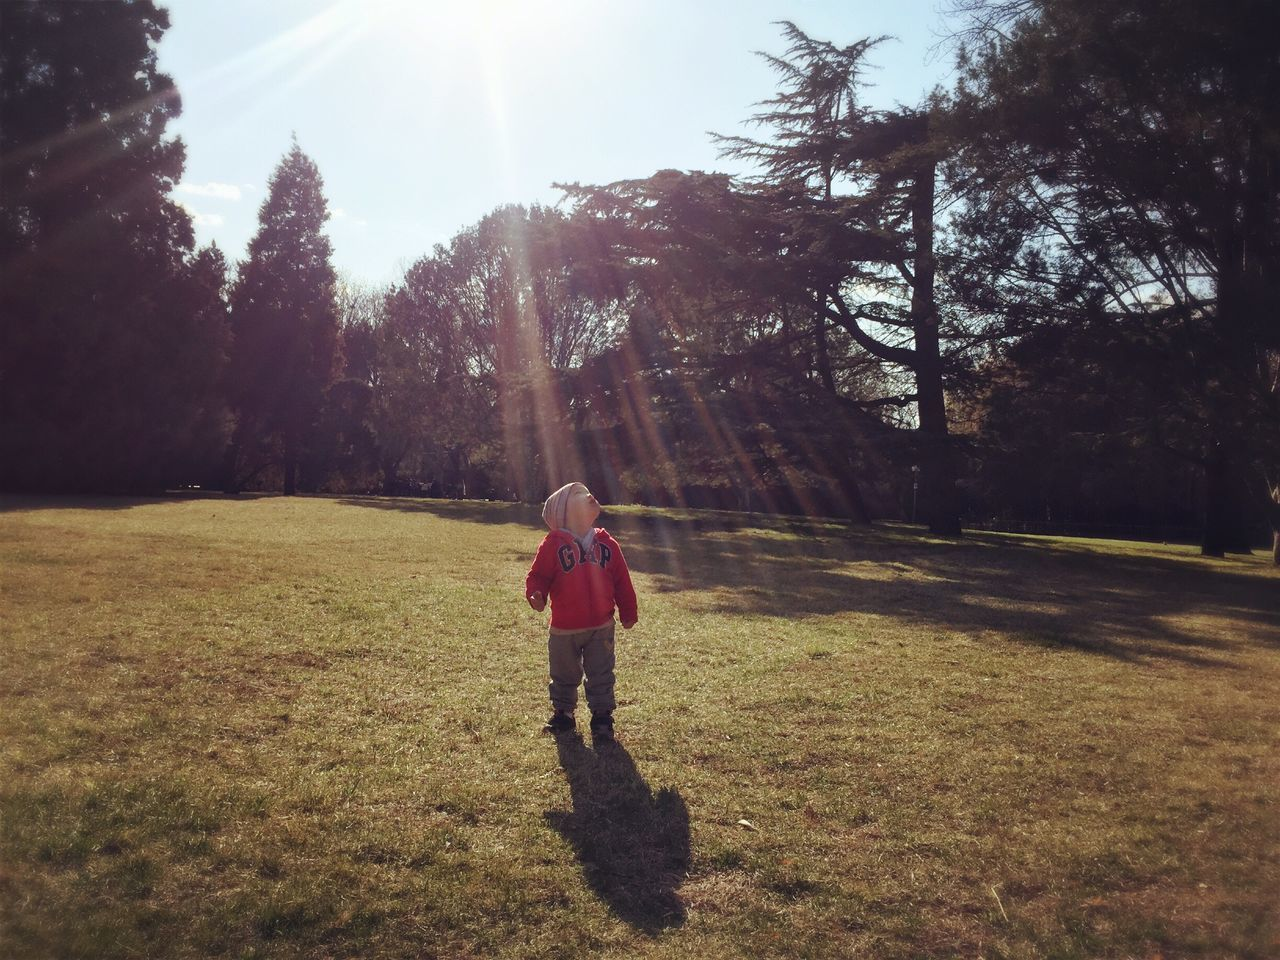 tree, sunlight, real people, one person, grass, leisure activity, casual clothing, outdoors, full length, day, nature, childhood, shadow, sky, lifestyles, growth, young adult, people